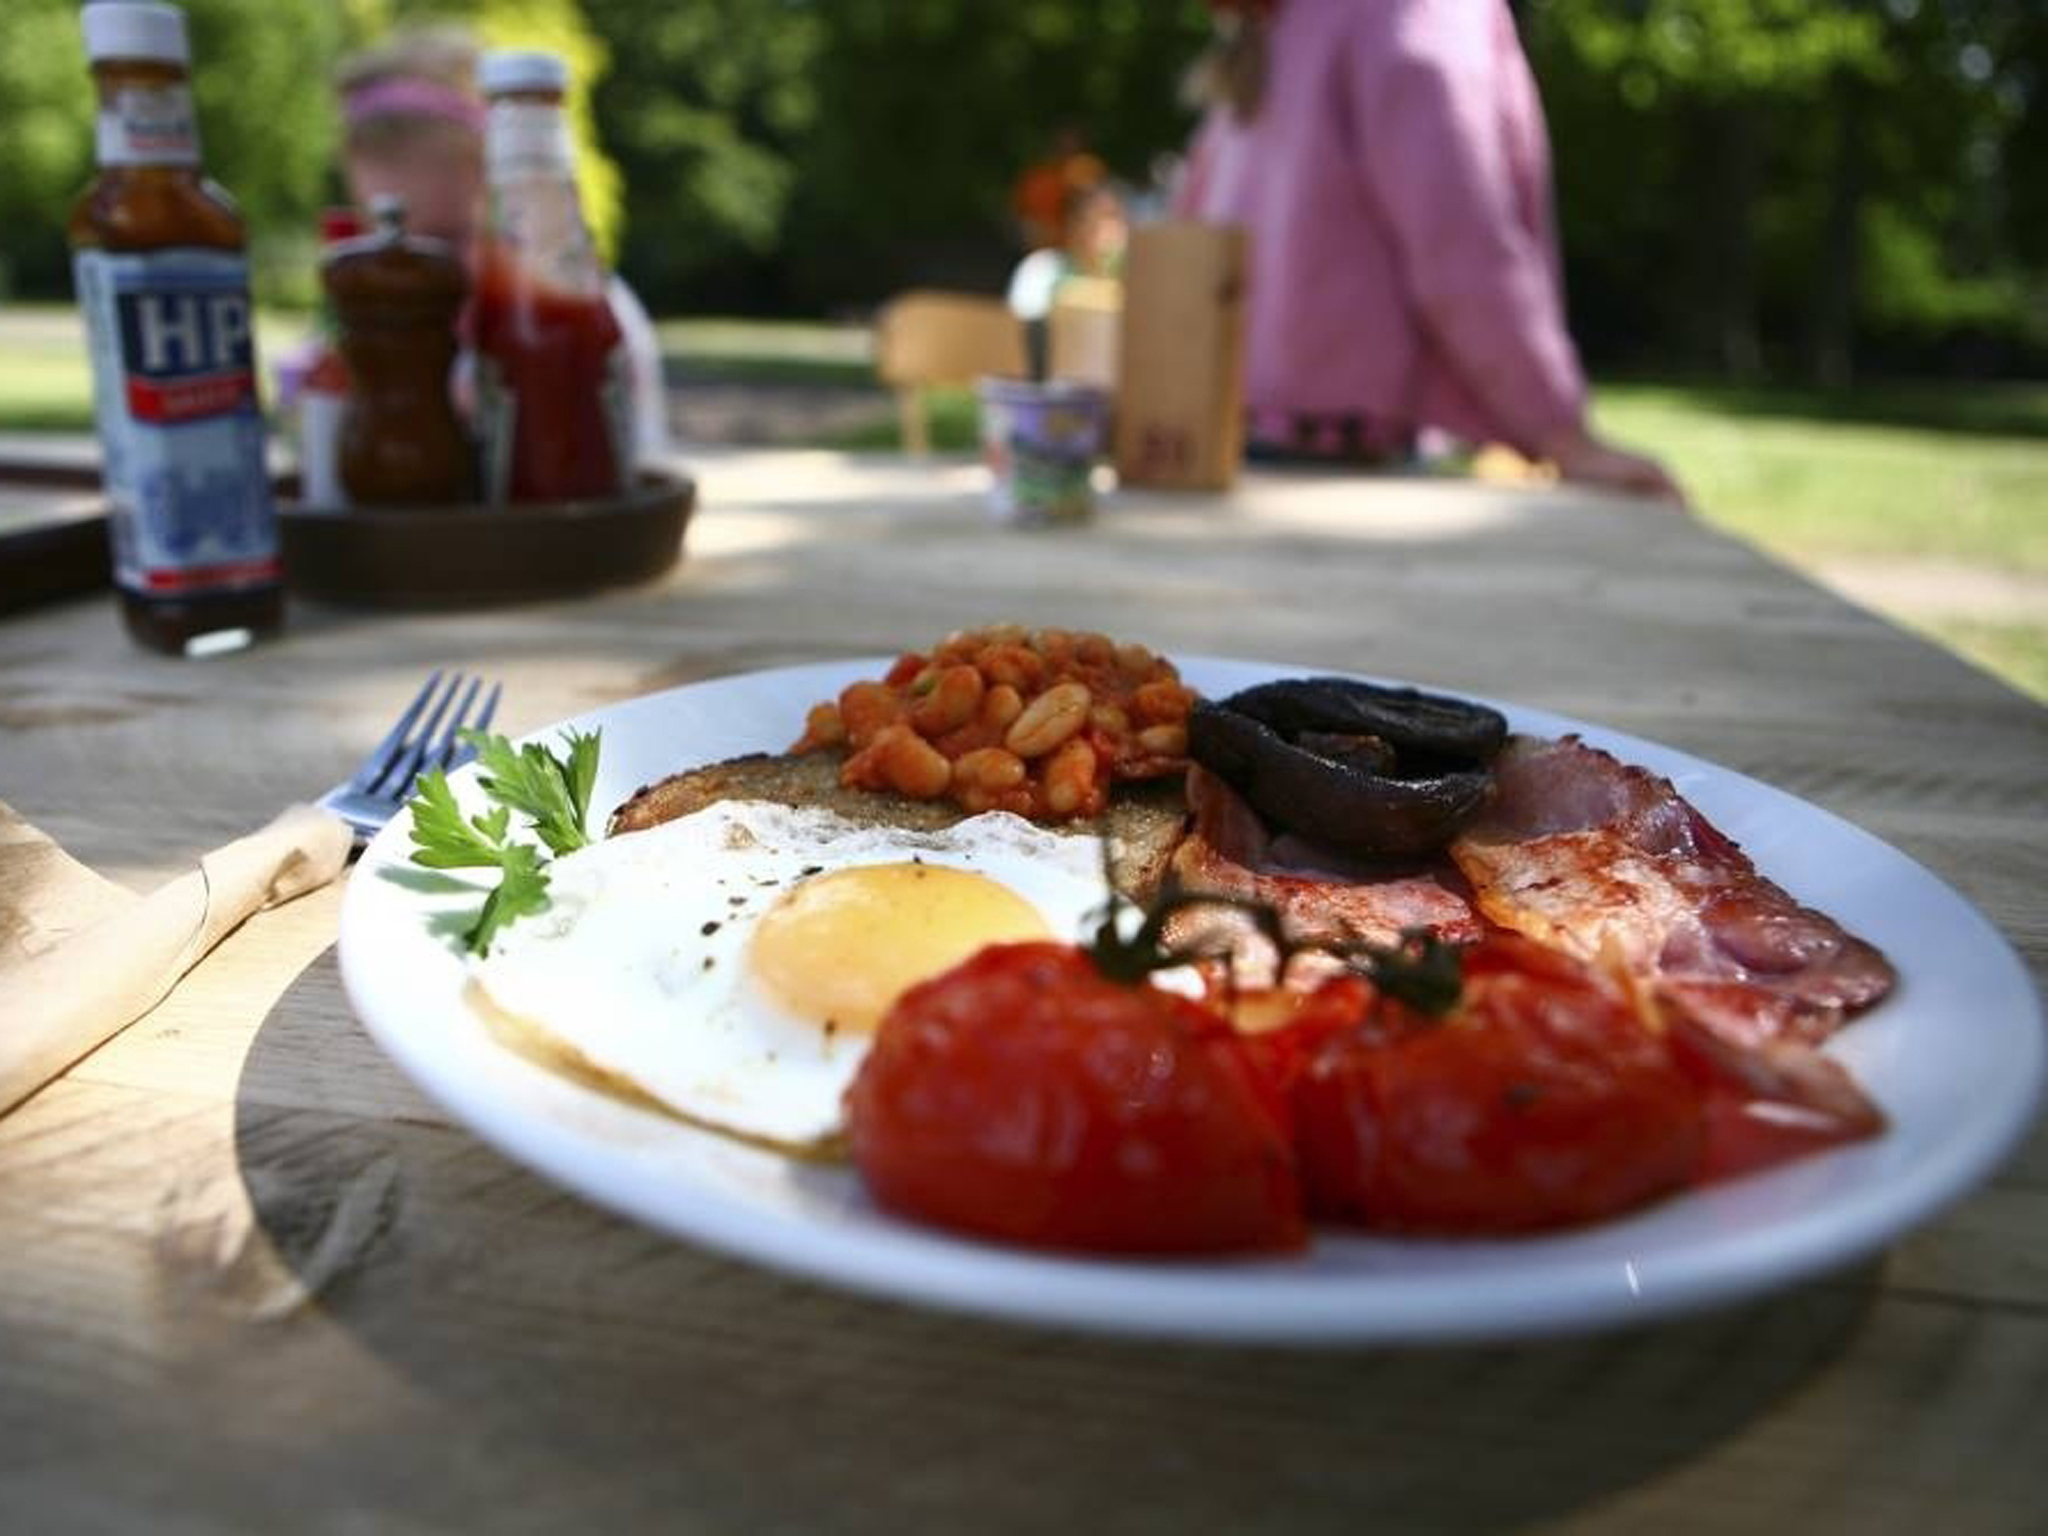 london's best full english breakfasts, fry ups, pavilion cafe